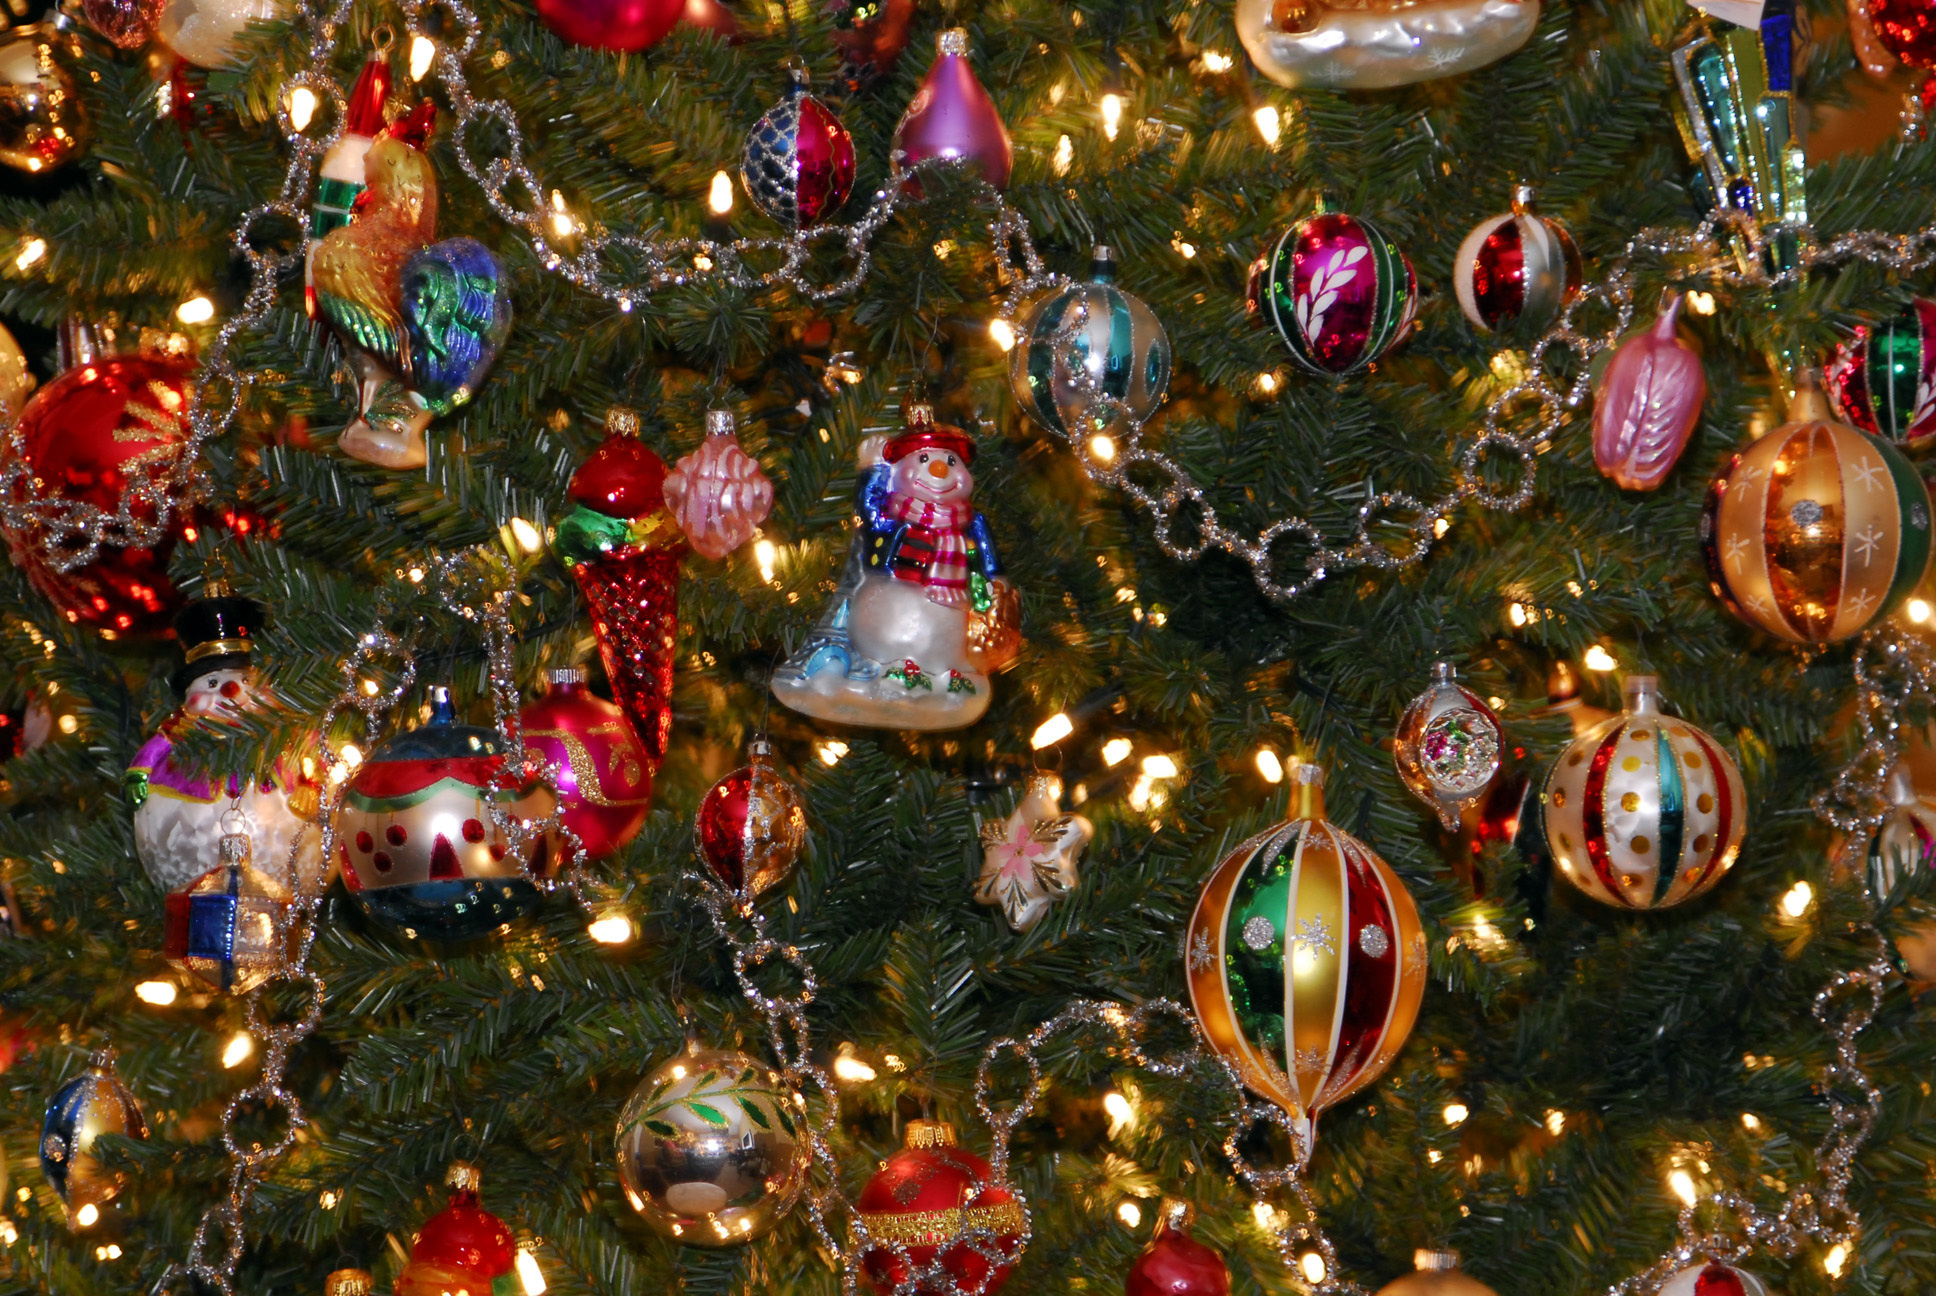 Christmas tree ornaments Christmas tree ornaments ideas